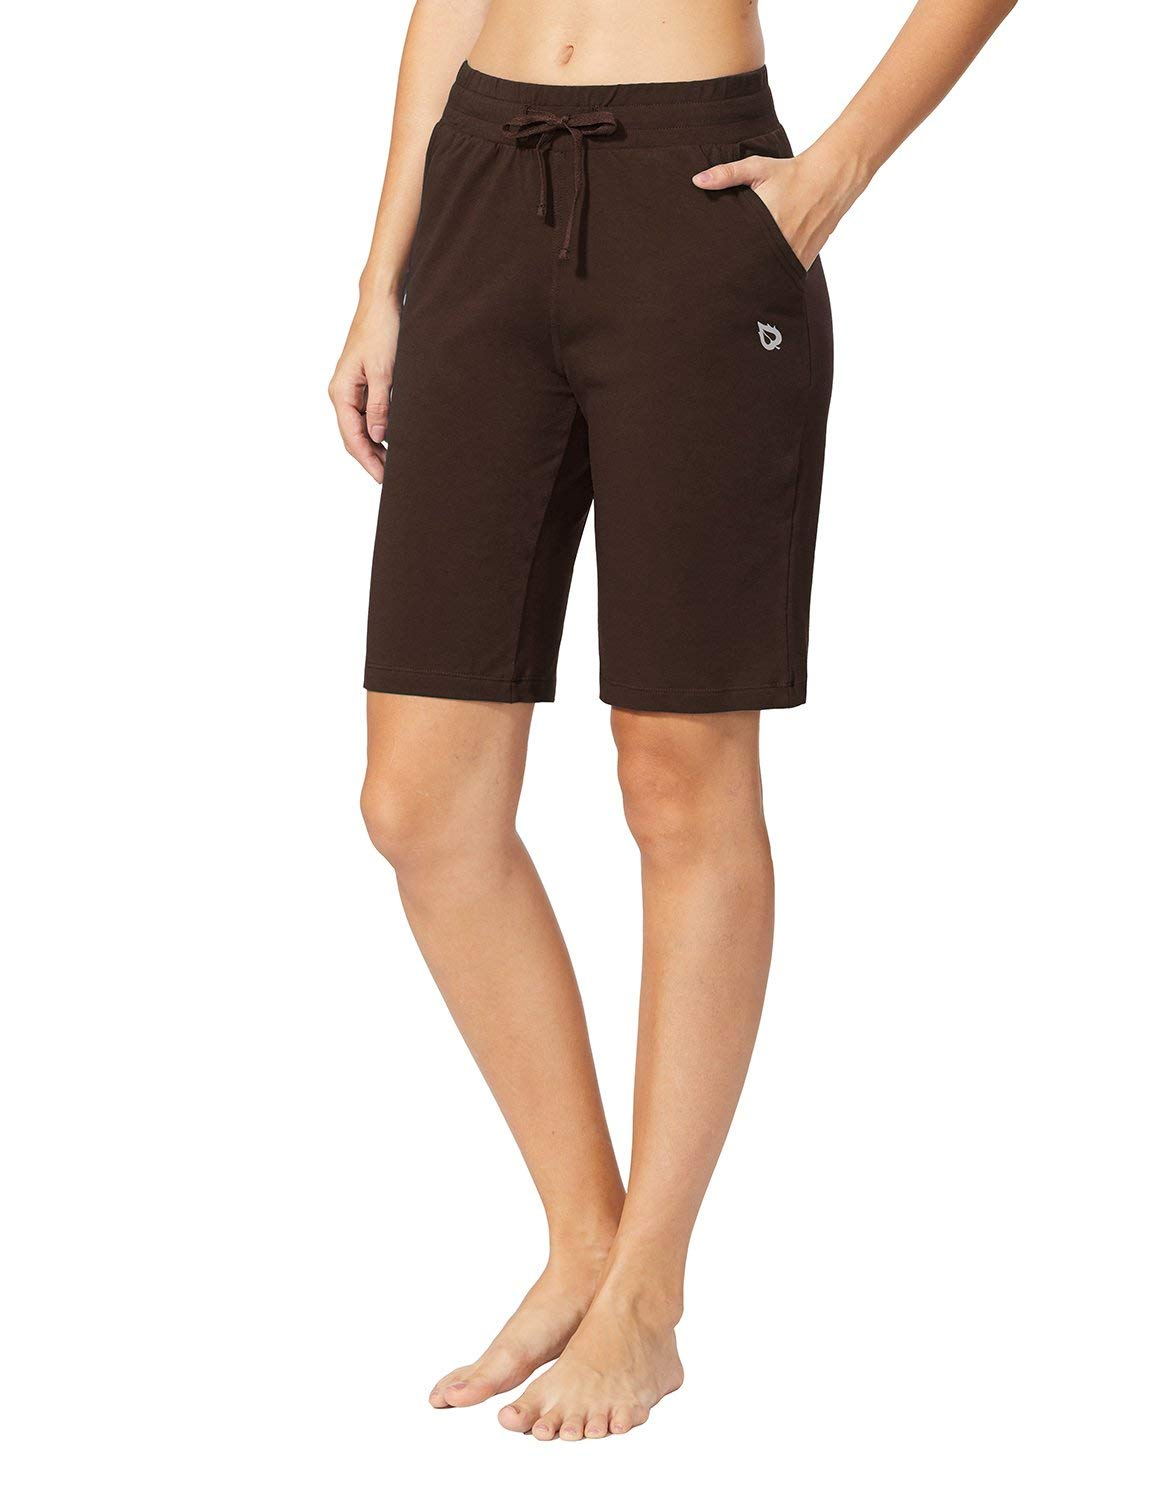 Baleaf Women's Active Yoga Lounge Bermuda Shorts with Pockets Coffee Size S by Baleaf